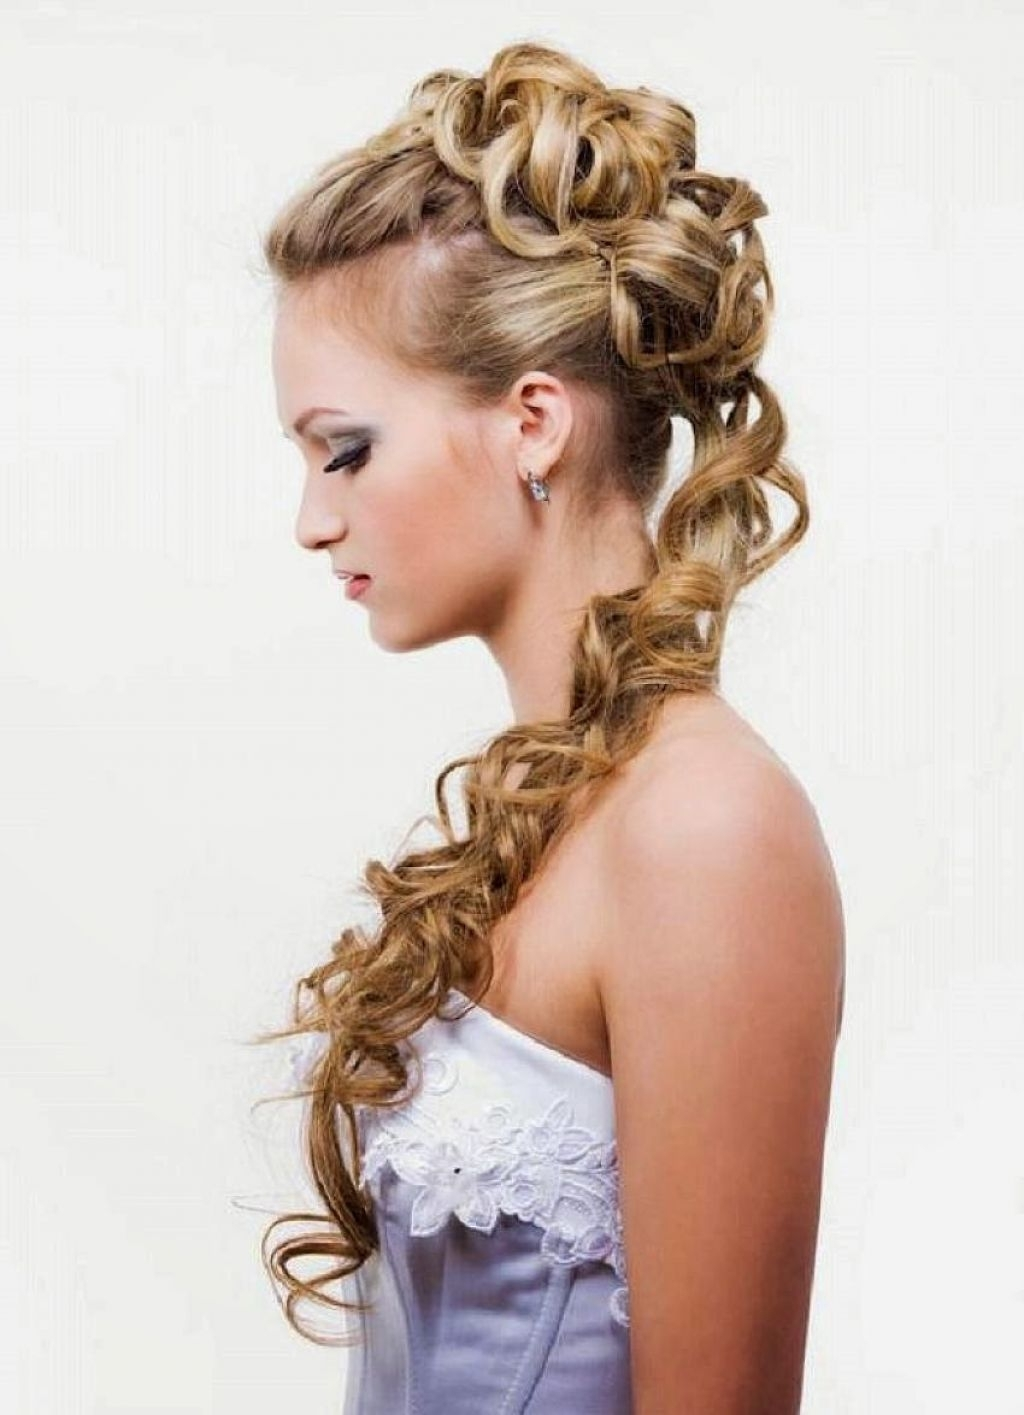 Updo Hairstyles For Long Straight Hair – Hairstyle For Women & Man With Regard To Straight Hair Updo Hairstyles (Gallery 3 of 15)